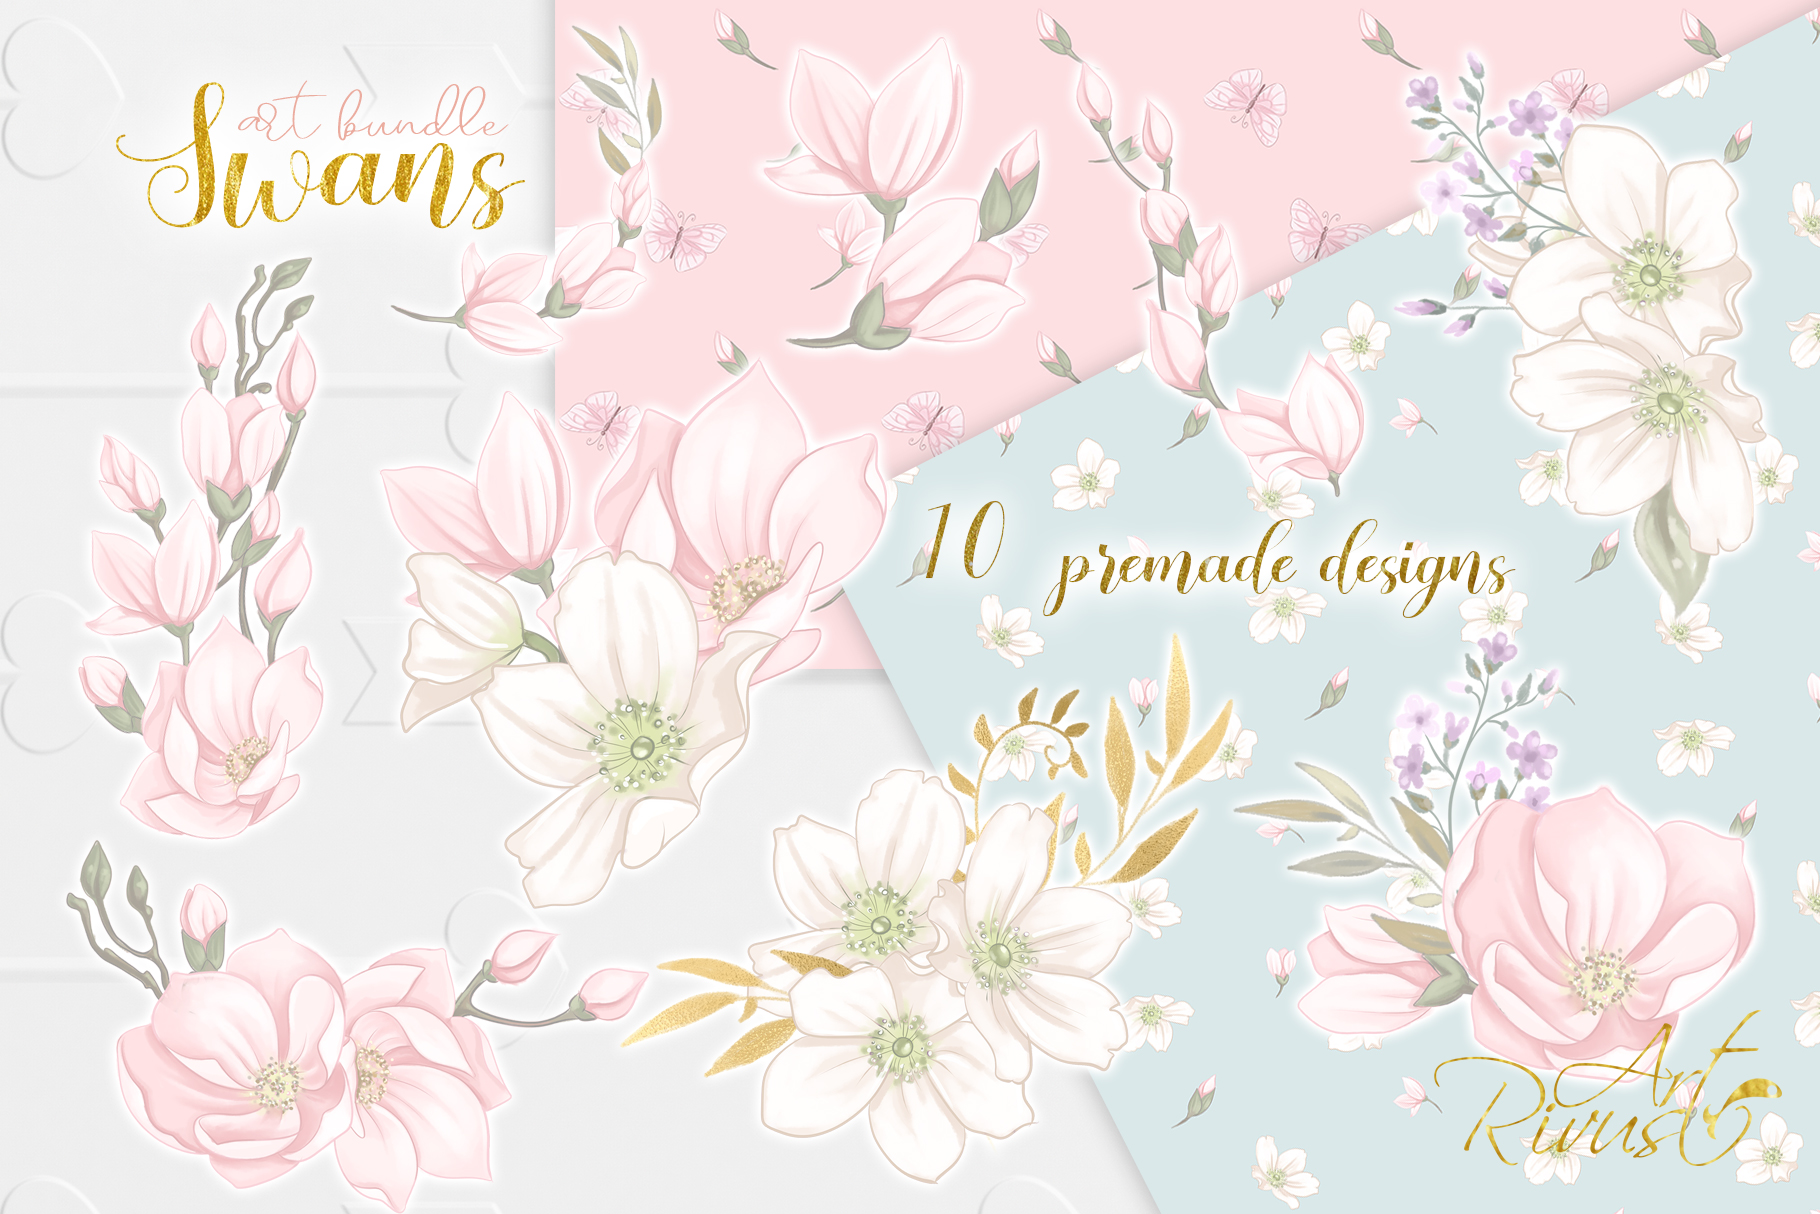 Swans clipart bundle. Wedding and baby shower graphic pack. example image 7